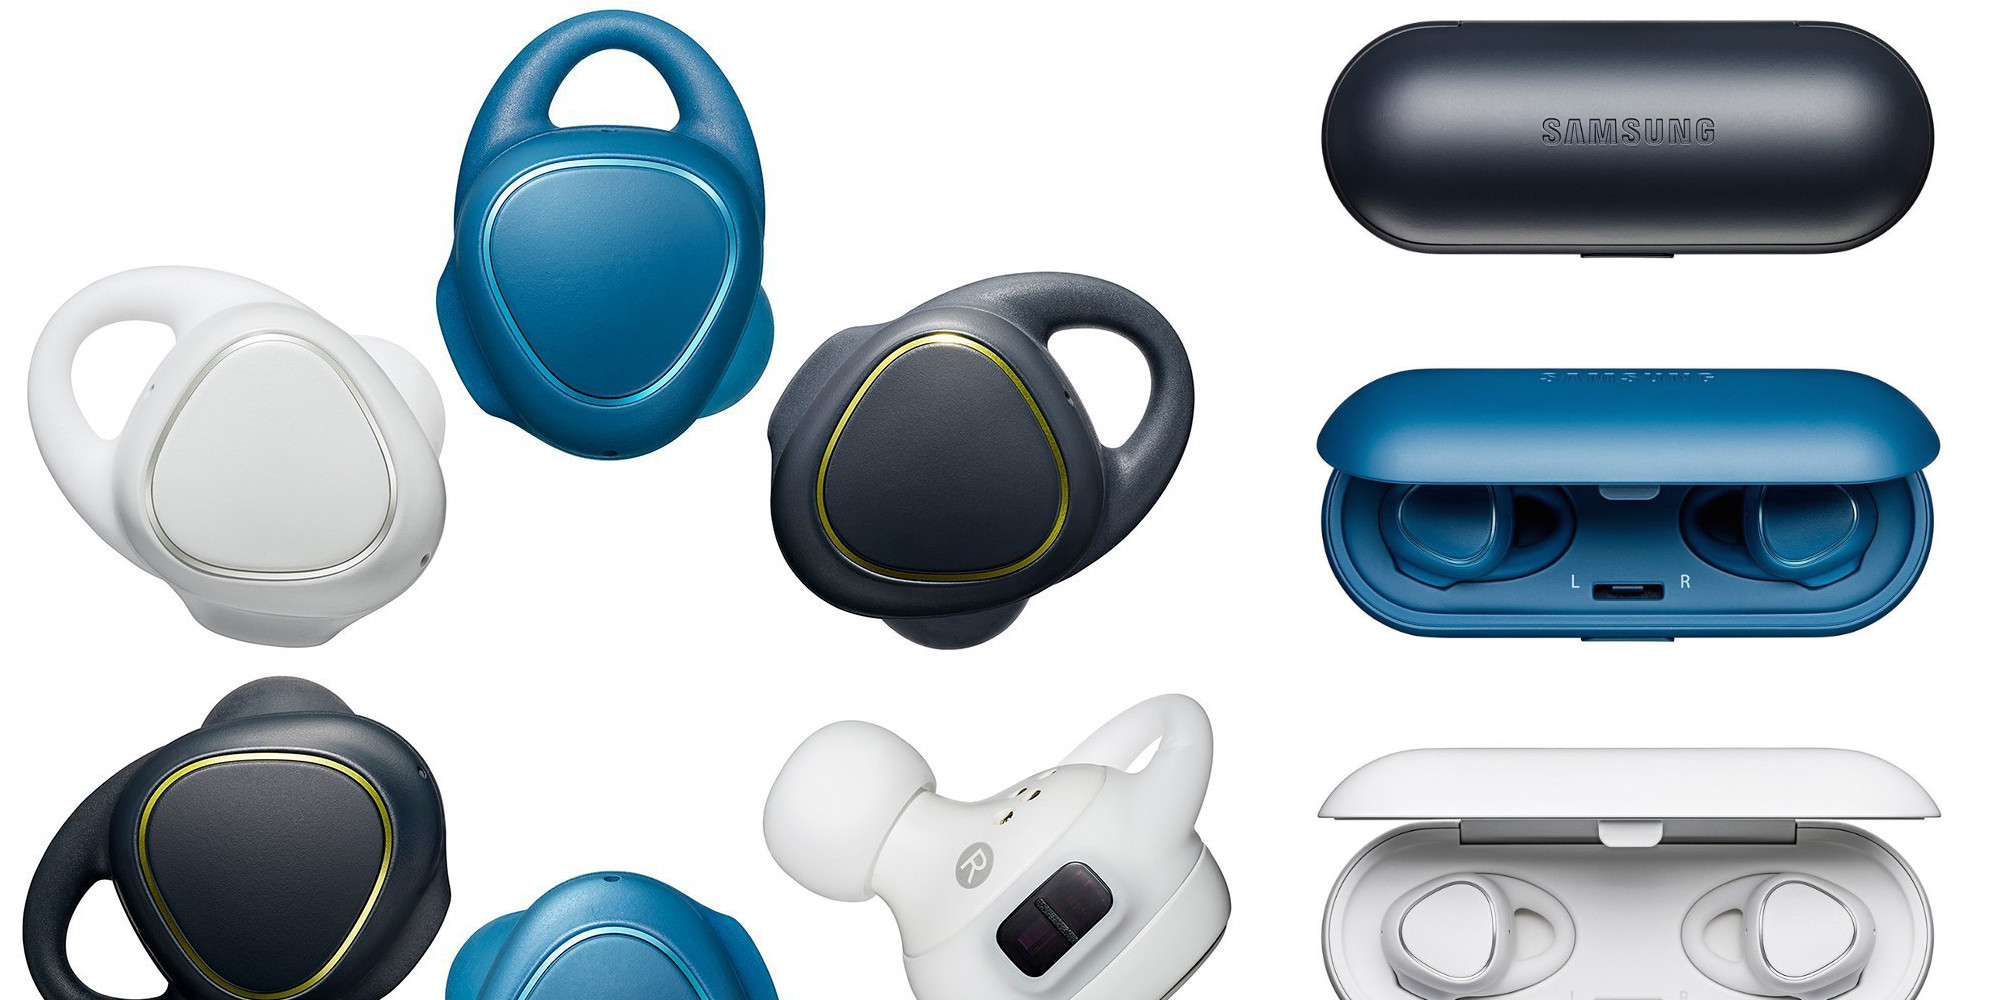 samsung-gear-iconx-cordfree-fitness-earbuds-with-activity-tracker-3